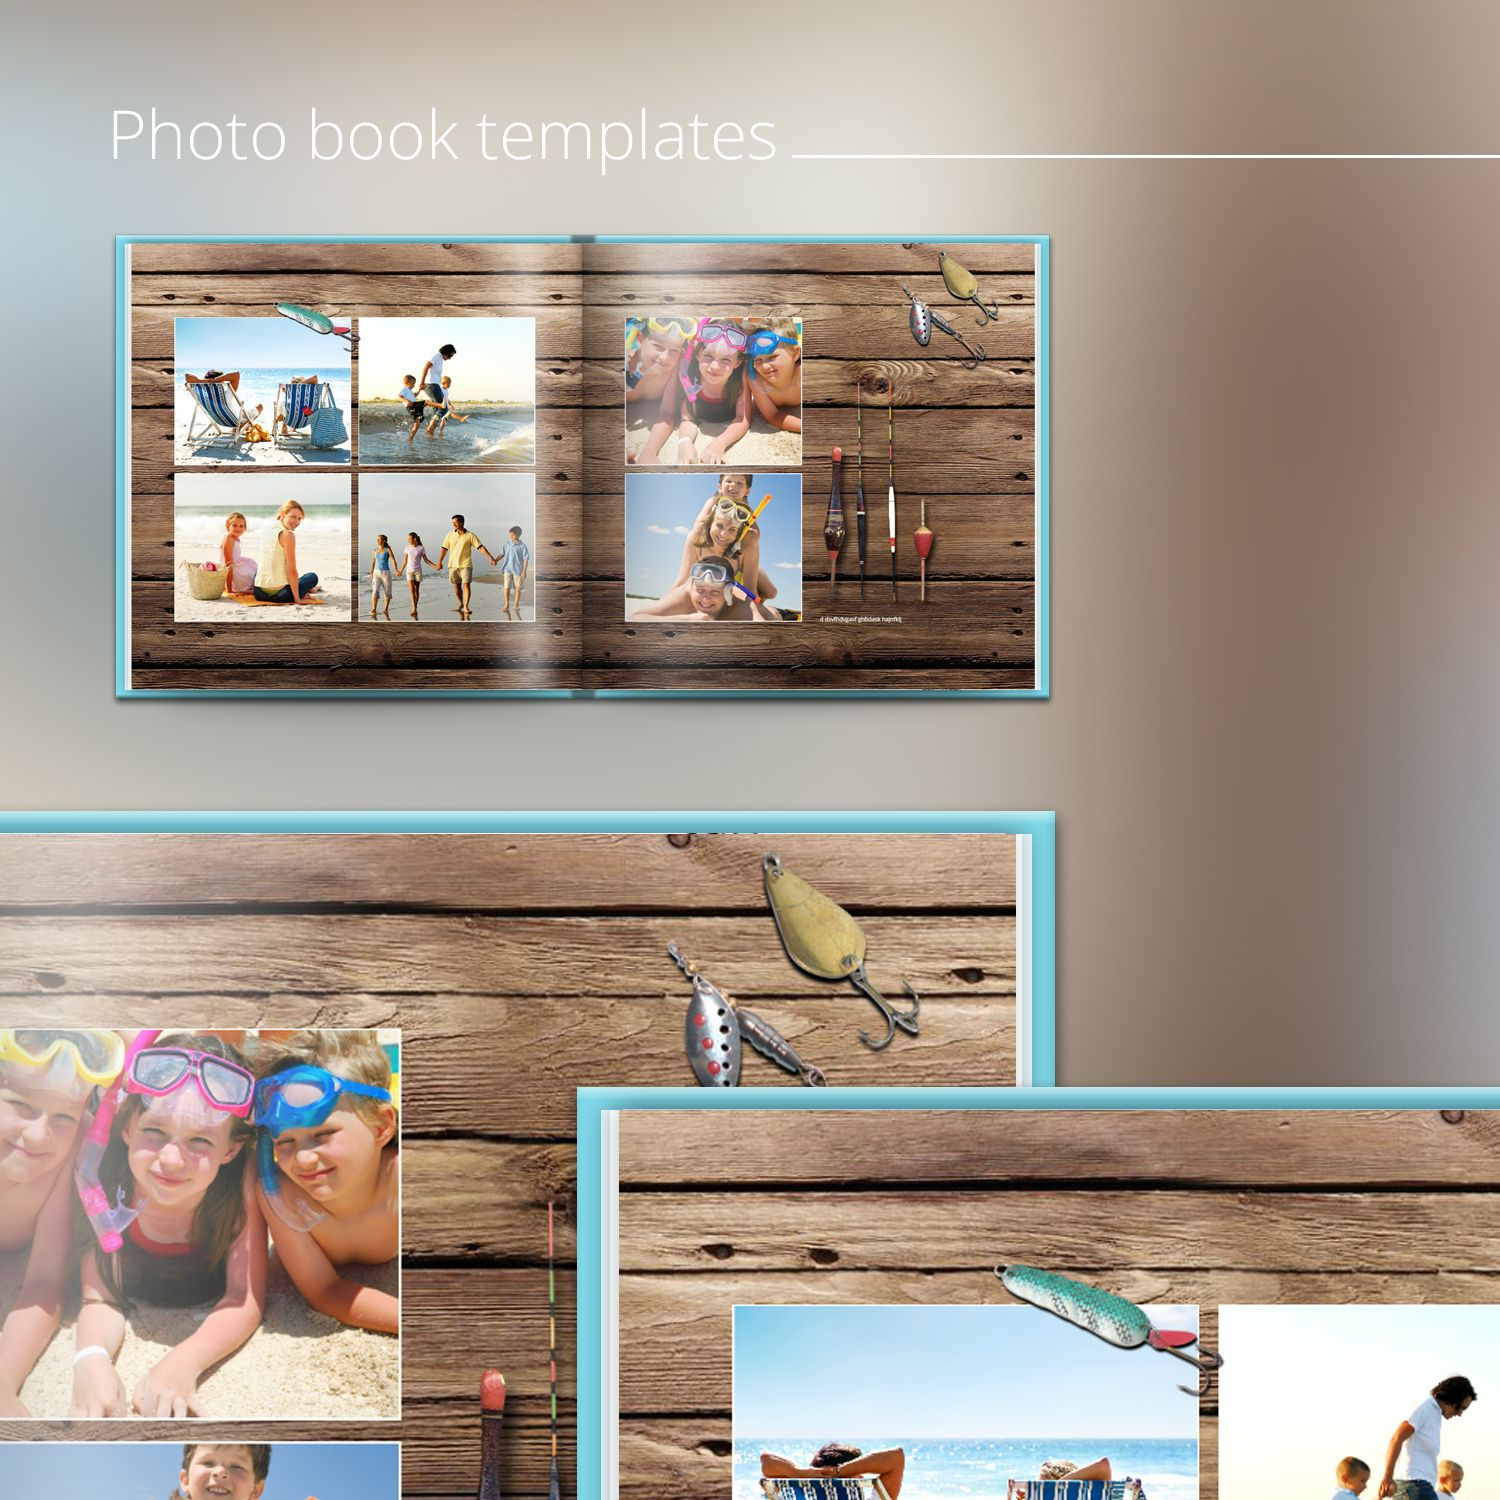 000 Staggering Free Photo Book Template High Resolution  TemplatesFull